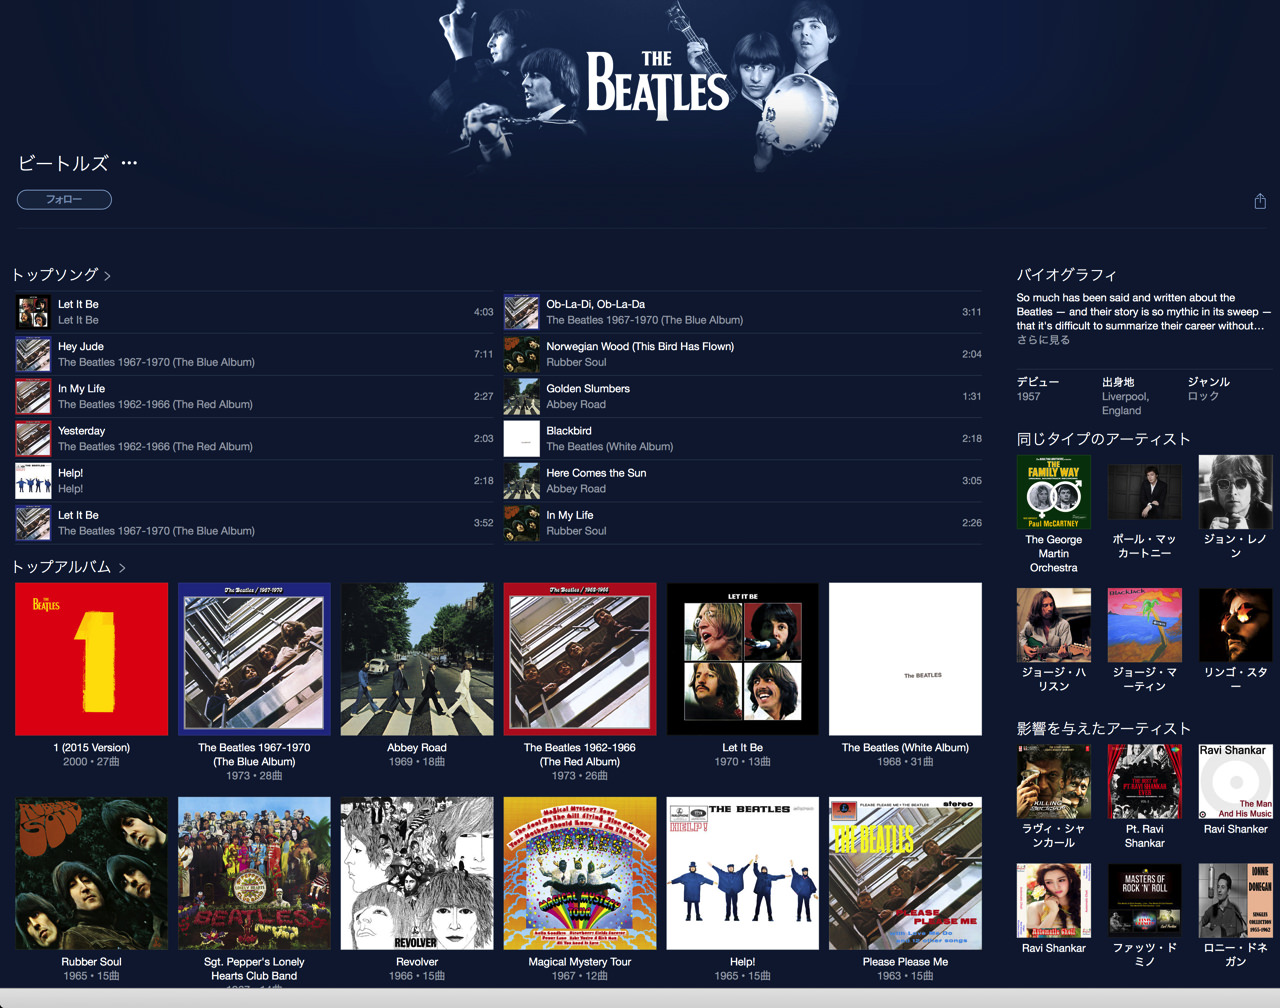 The beatles music distribution start at apple music2